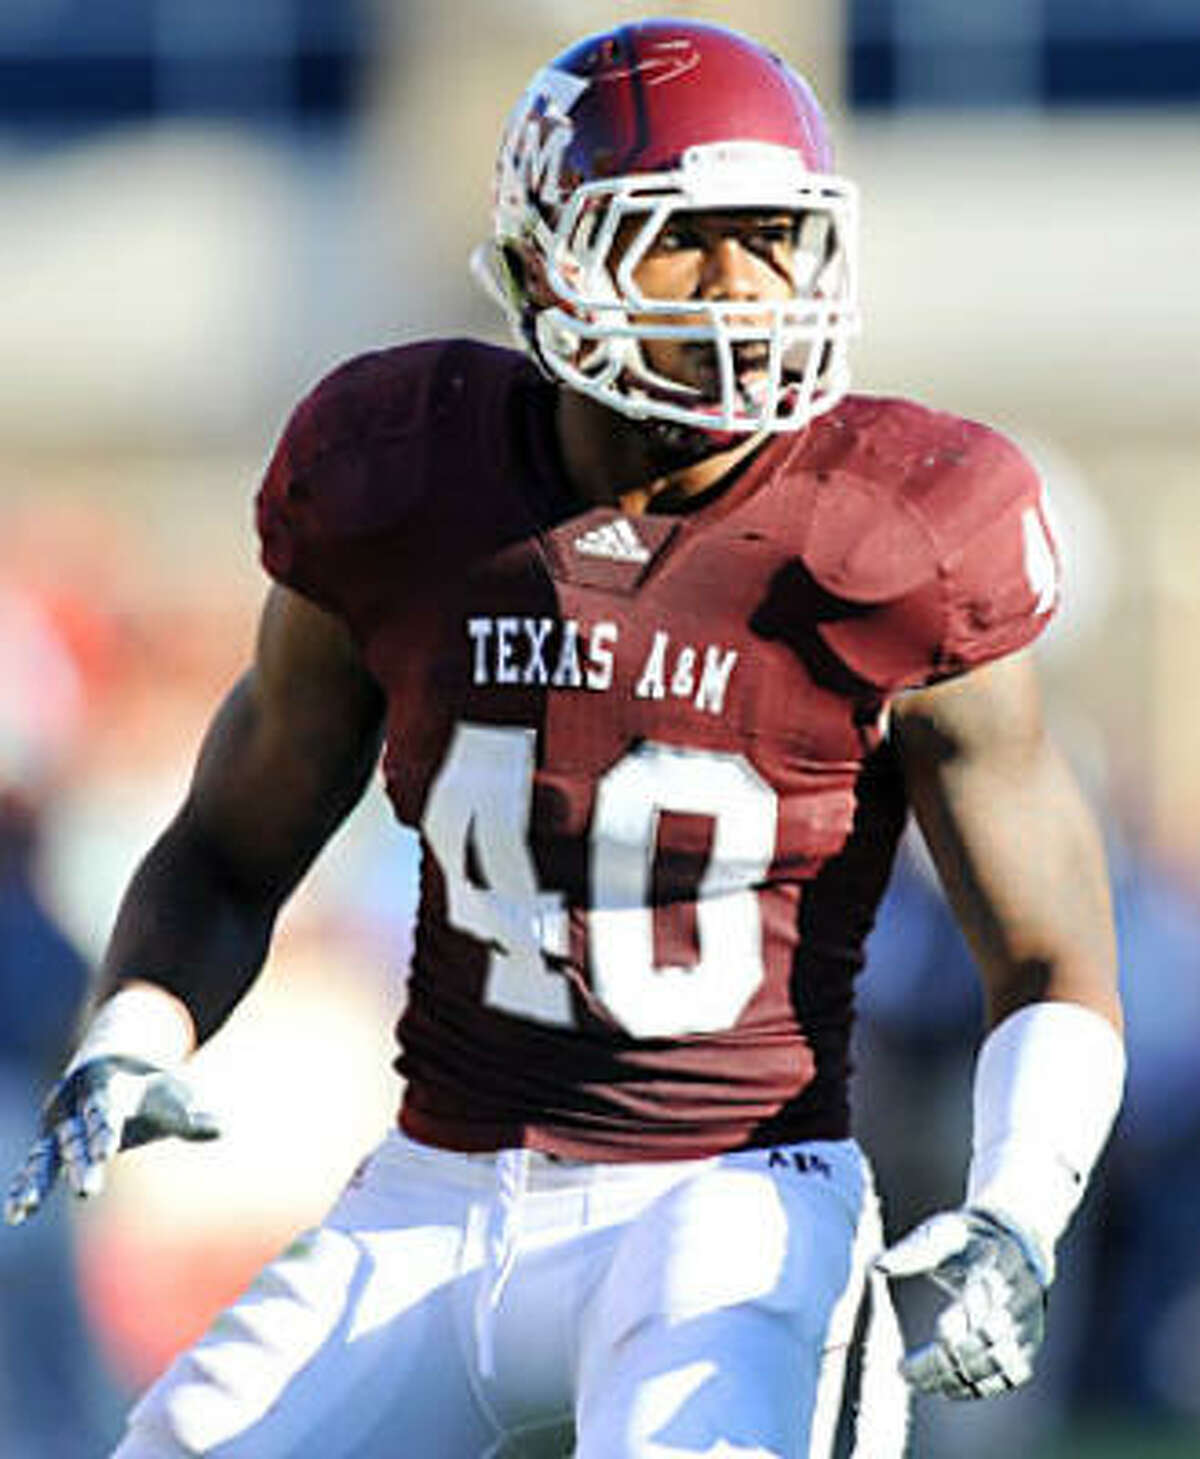 Texas A&M outside linebacker Von Miller would fill the Texans' biggest need, but they likely would have to move into the second spot to guarantee getting him.